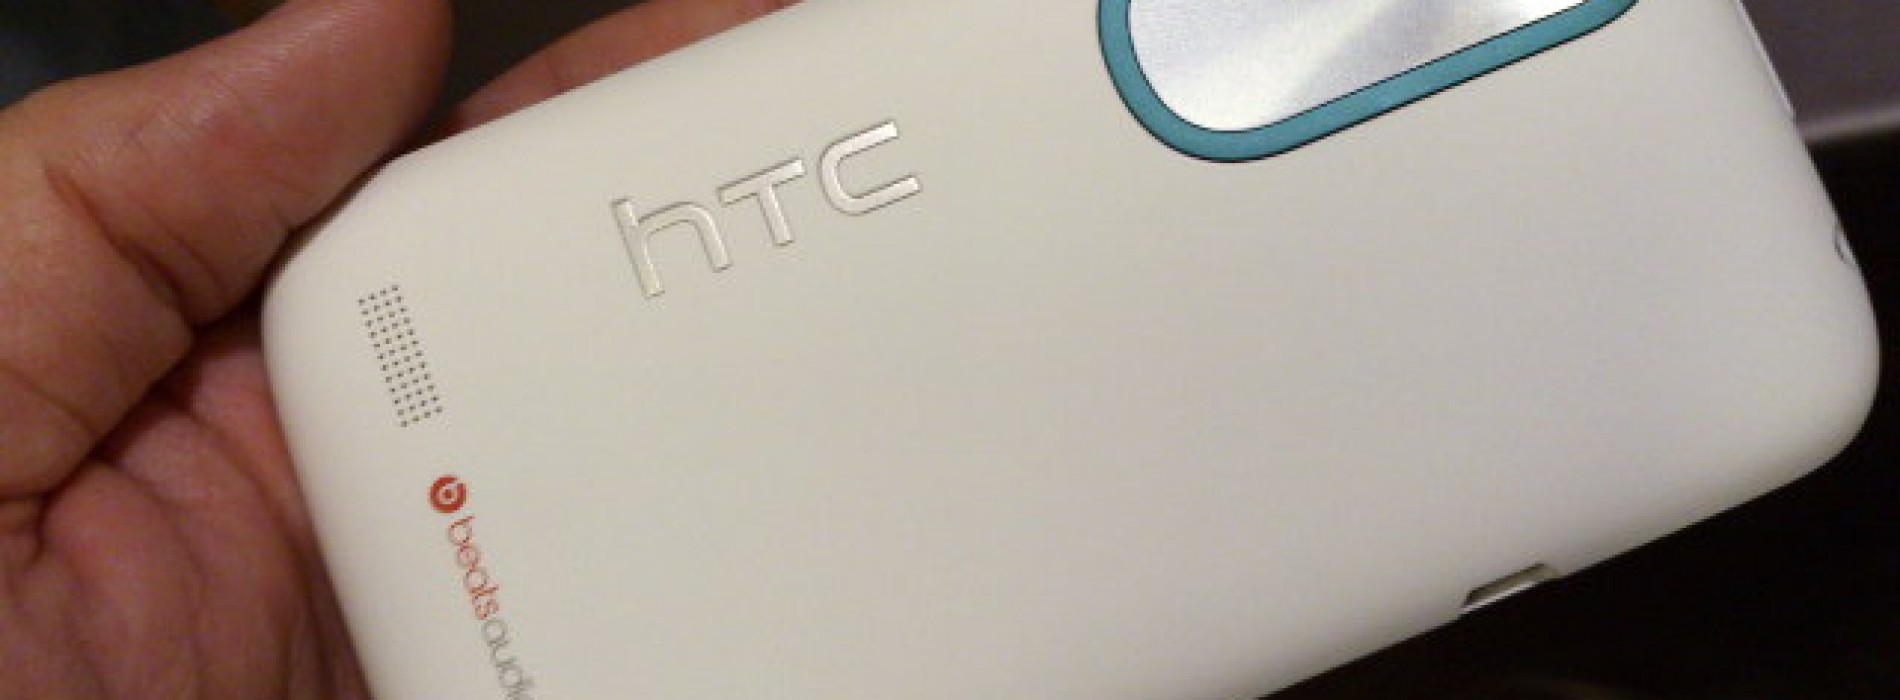 More details released for HTC Desire X